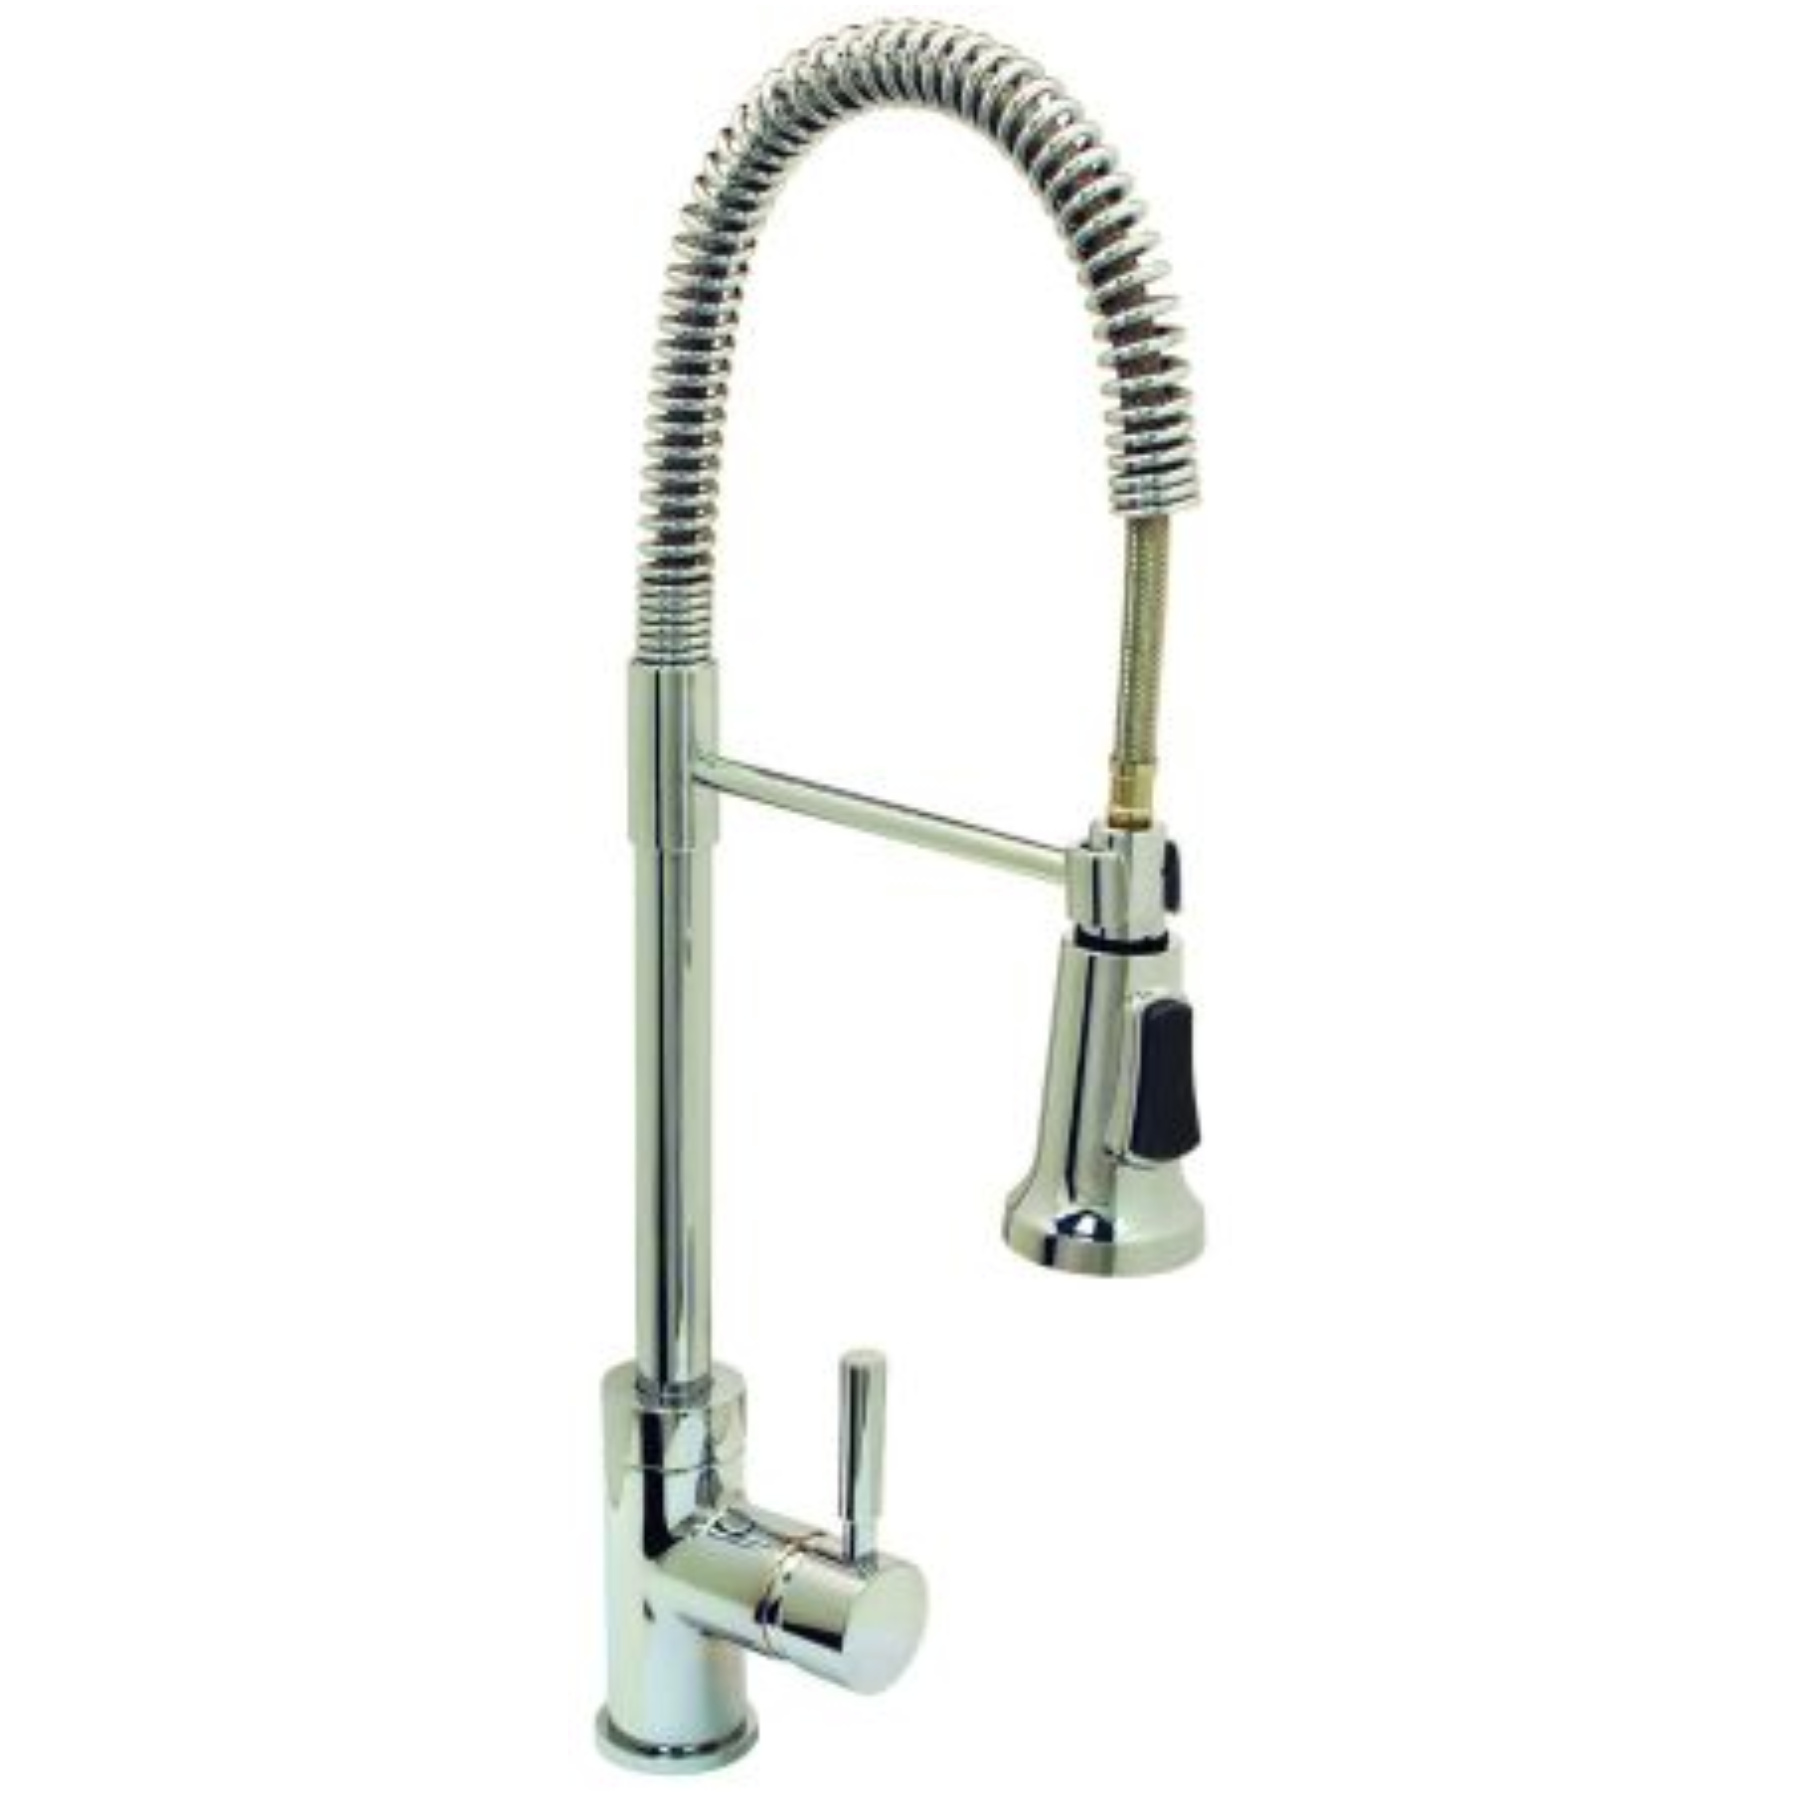 LEAD-FREE ESSEN� INDUSTRIAL-STYLE KITCHEN FAUCET WITH PULL-DOWN SPOUT AND METAL SINGLE-LEVER HANDLE, BRUSHED NICKEL